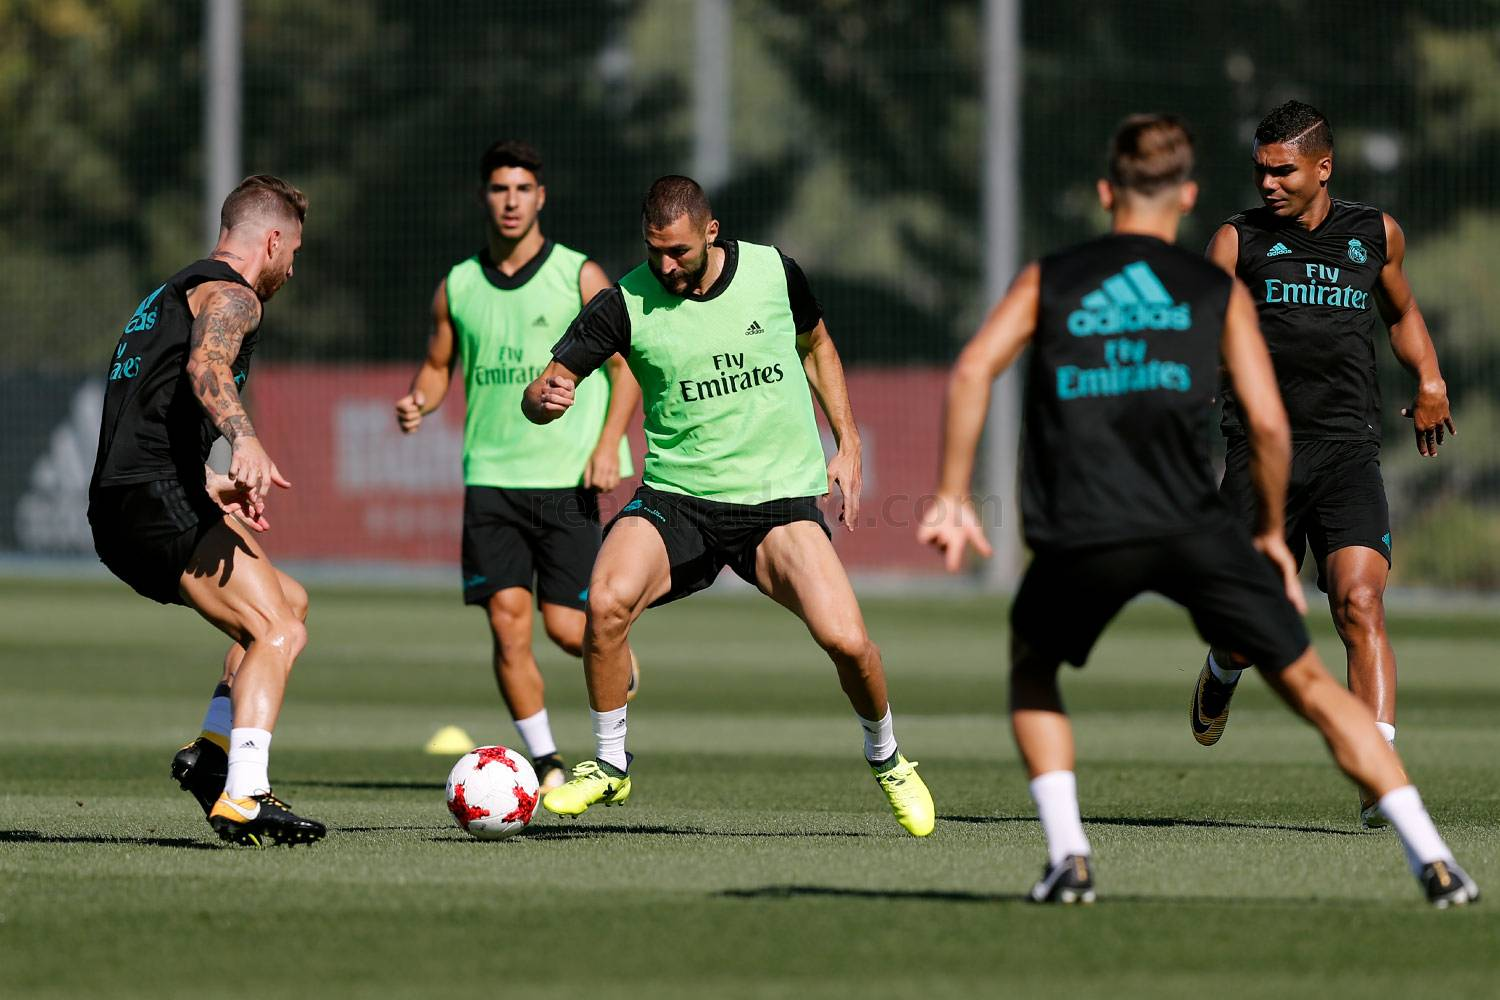 Real Madrid - Entrenamiento del Real Madrid - 12-08-2017